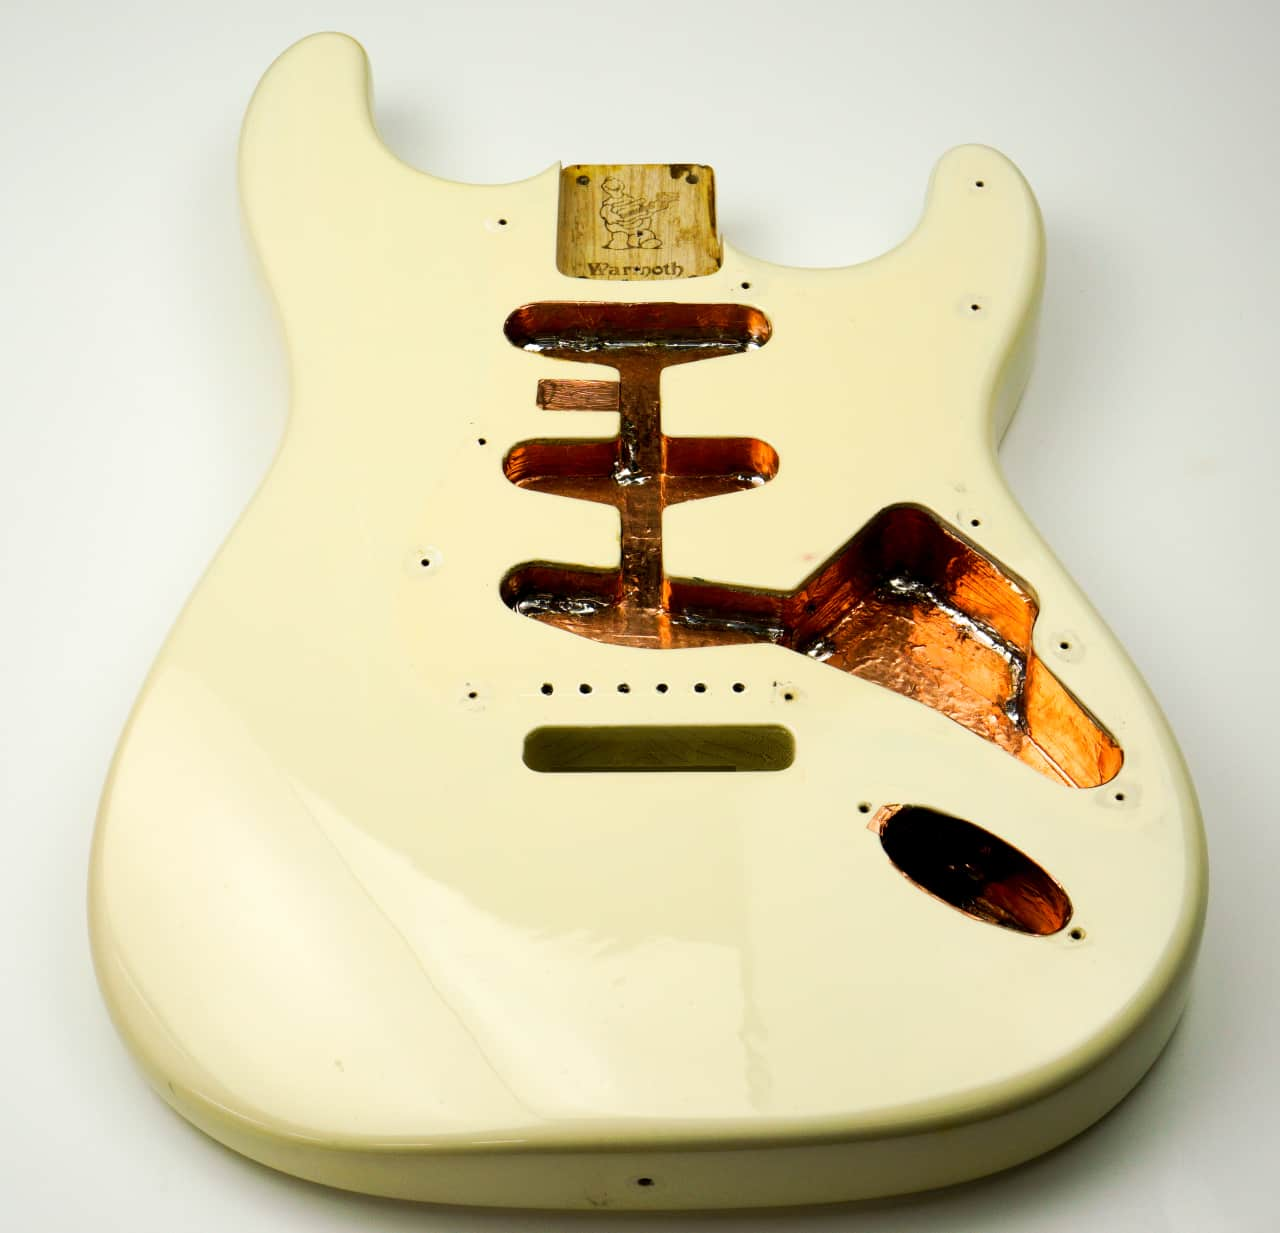 Warmoth Stratocaster Body Chambered Reverb